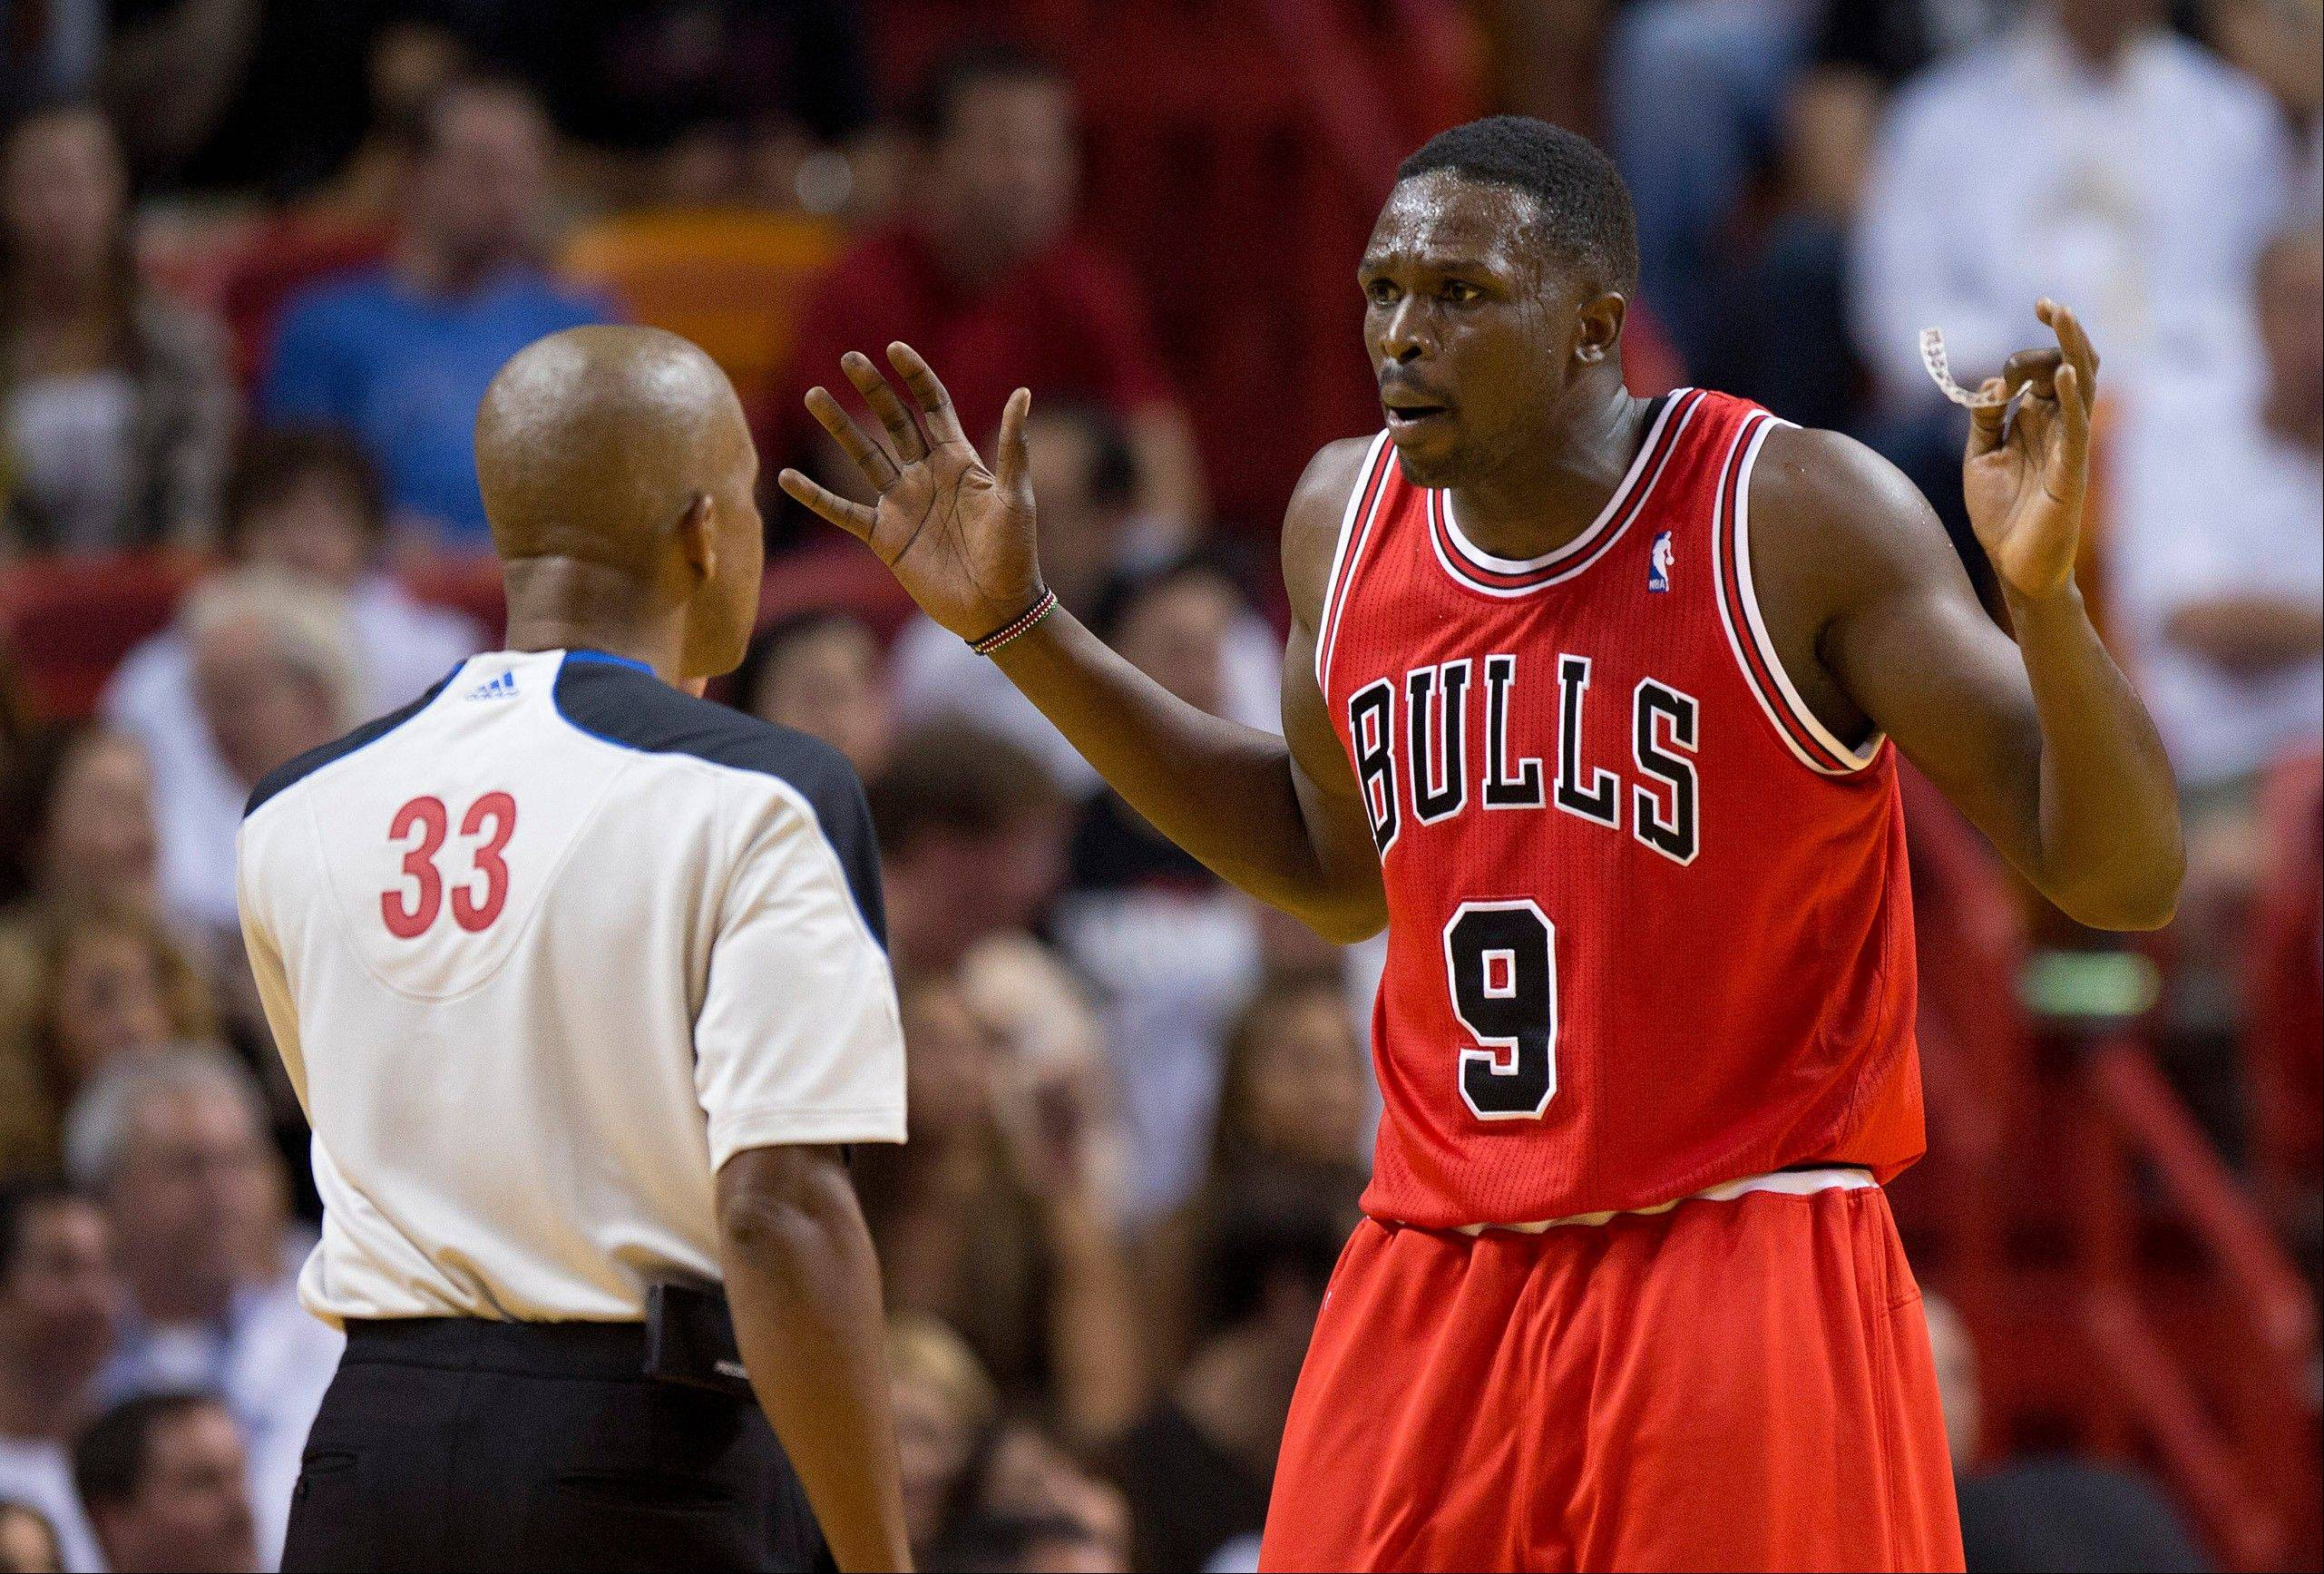 The Bulls' Luol Deng protests a foul call to official Sean Corbin during Tuesday's season-opening loss at Miami. Deng was on the bench with 3 fouls during a 17-0 Heat run in the second quarter.